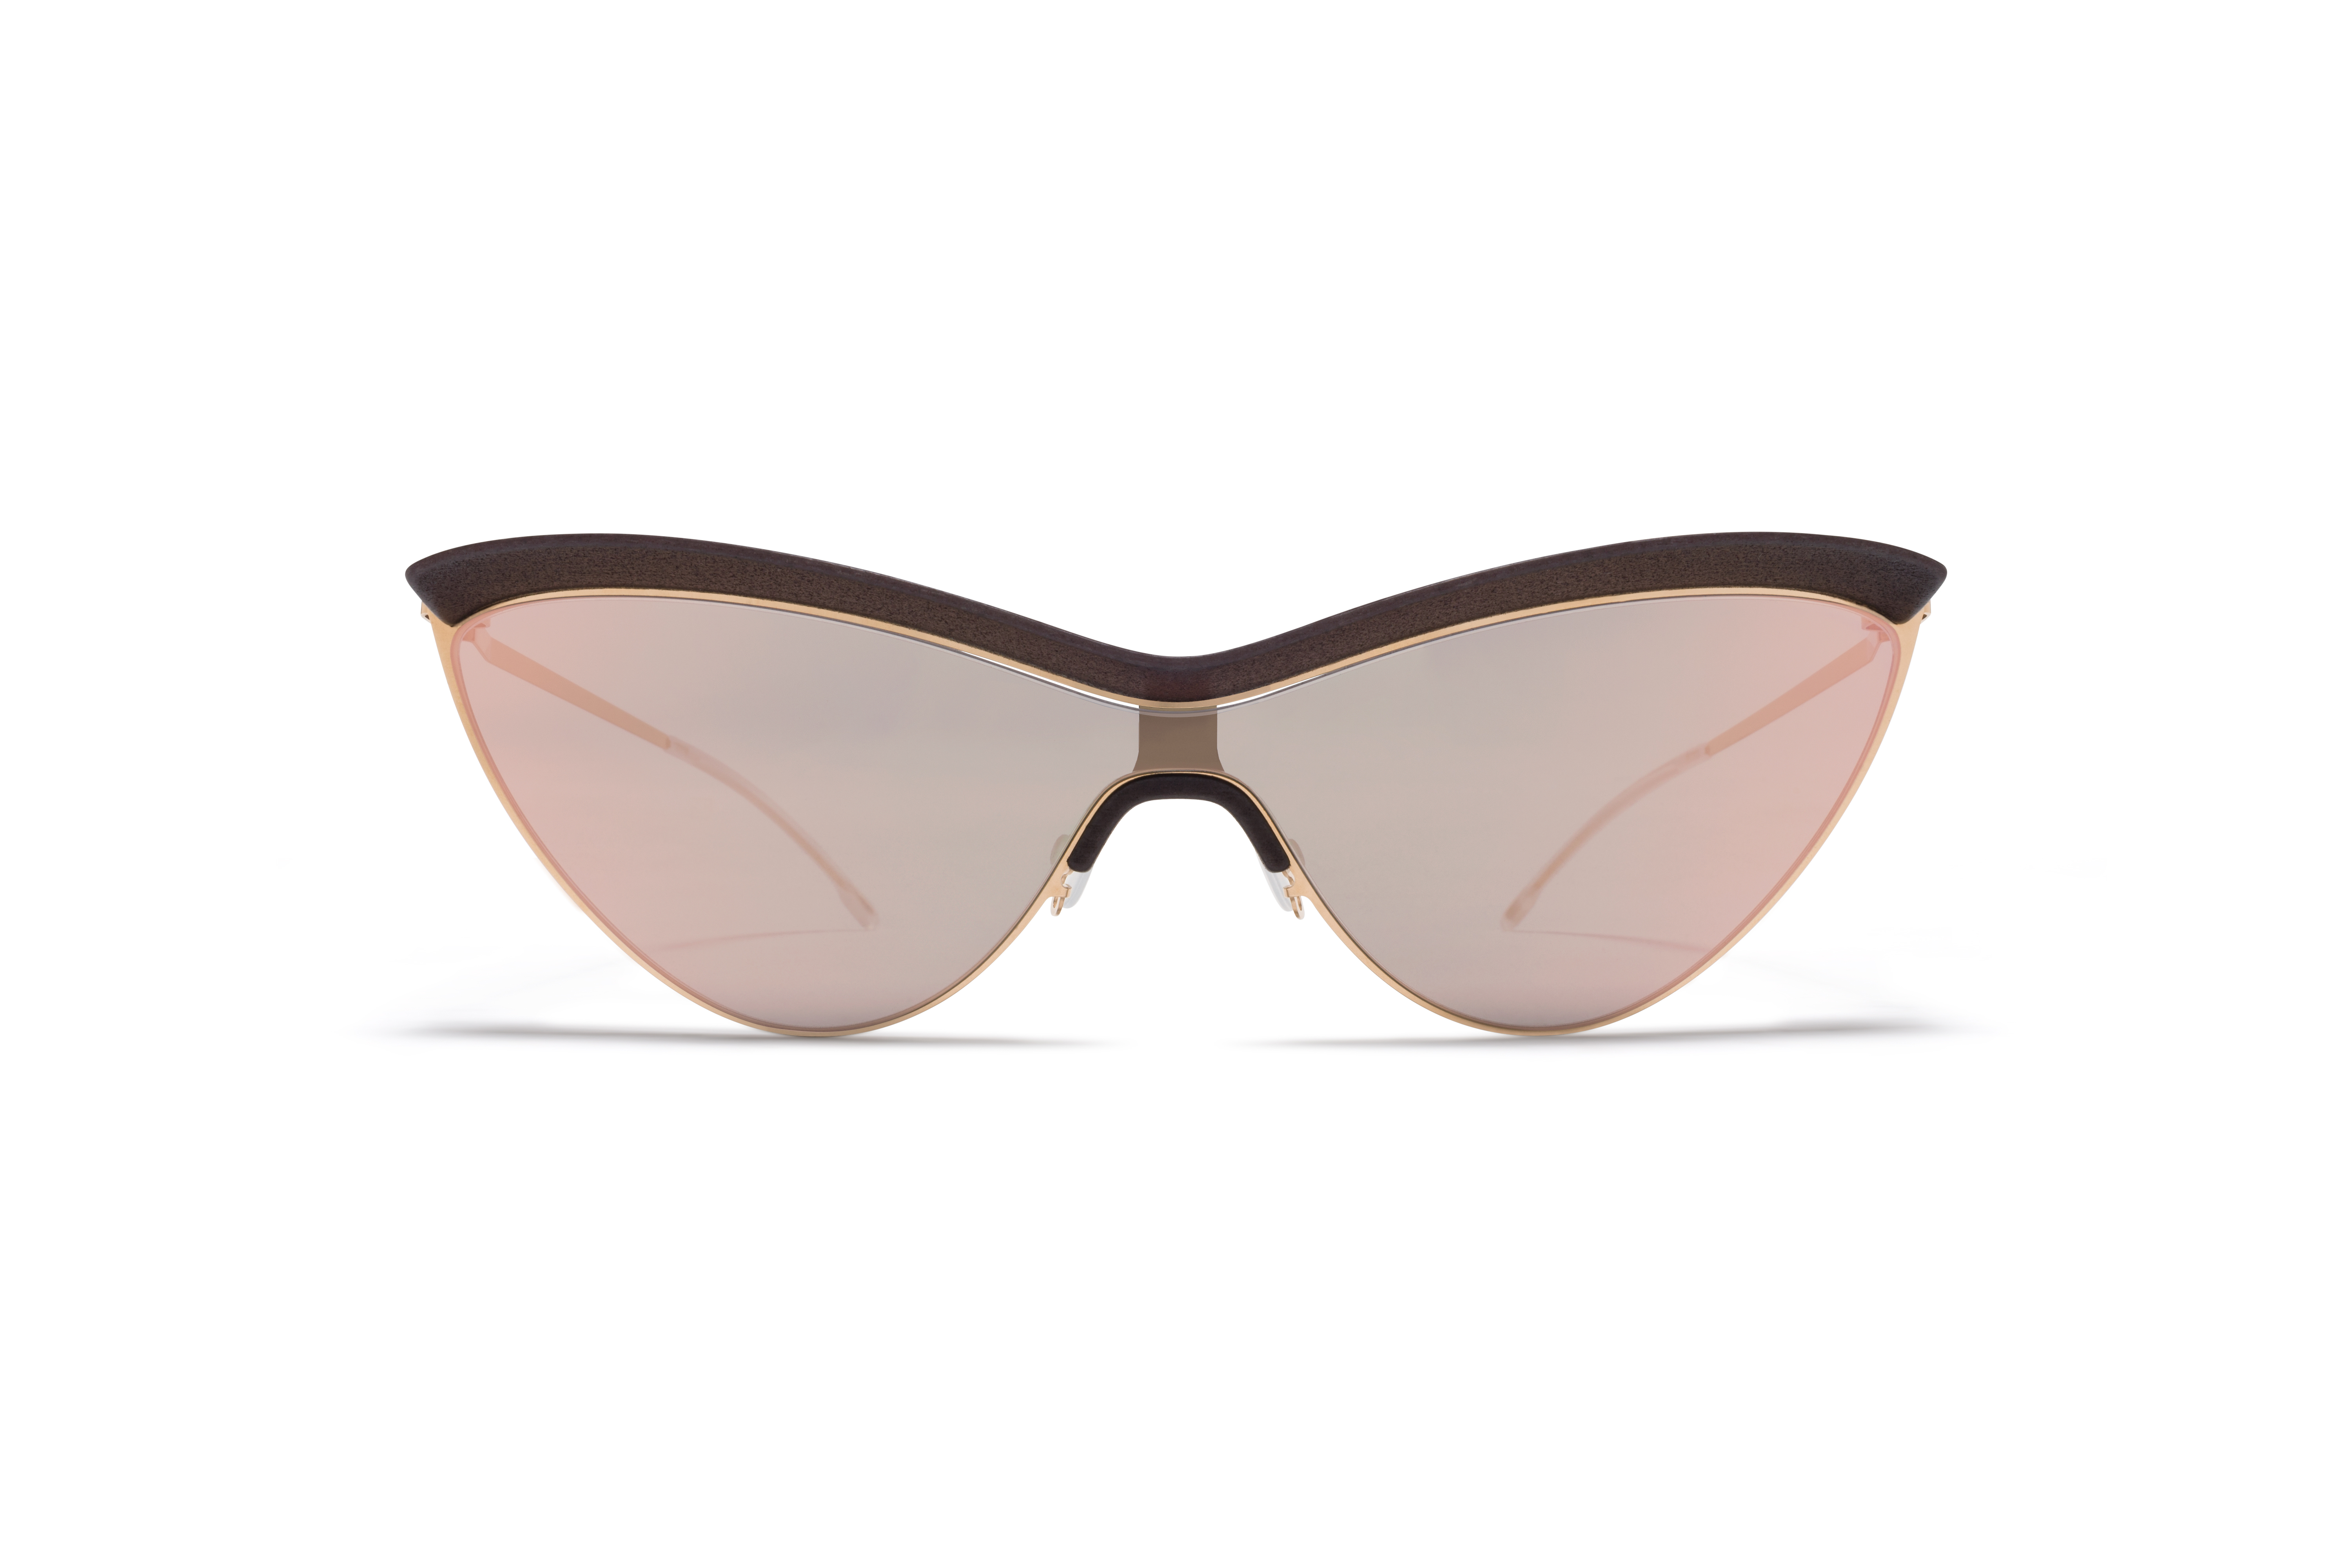 MYKITA Mm Sun Mmecho002 Mh8 Ebony Brown Glossy Gold Champagne Gold Shield